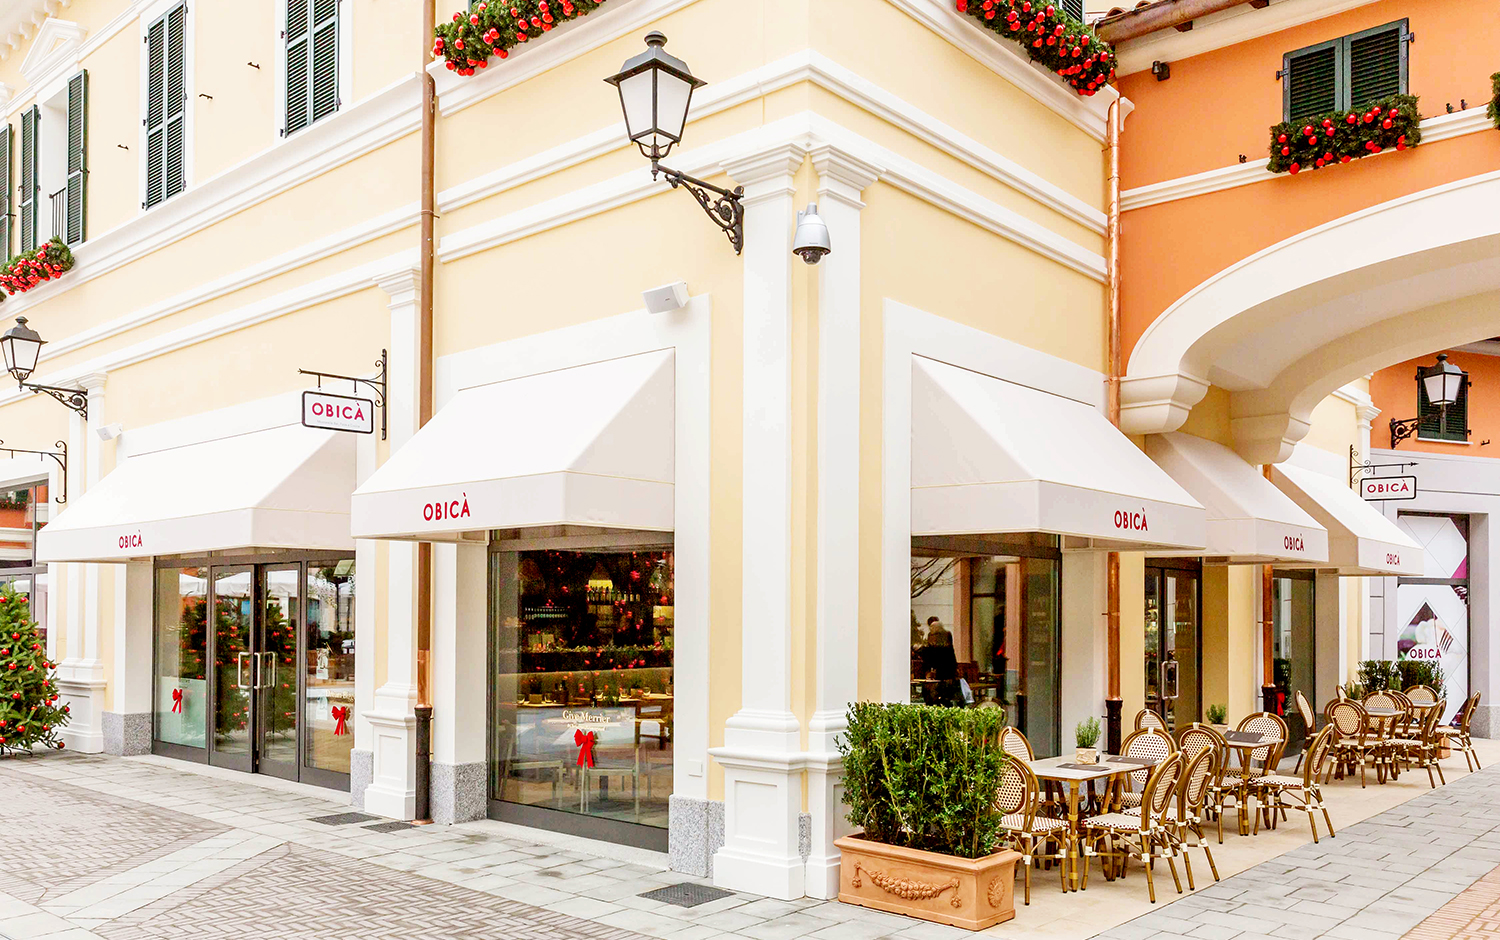 Obic mozzarella bar italian restaurant and pizzeria at for Serravalle designer outlet